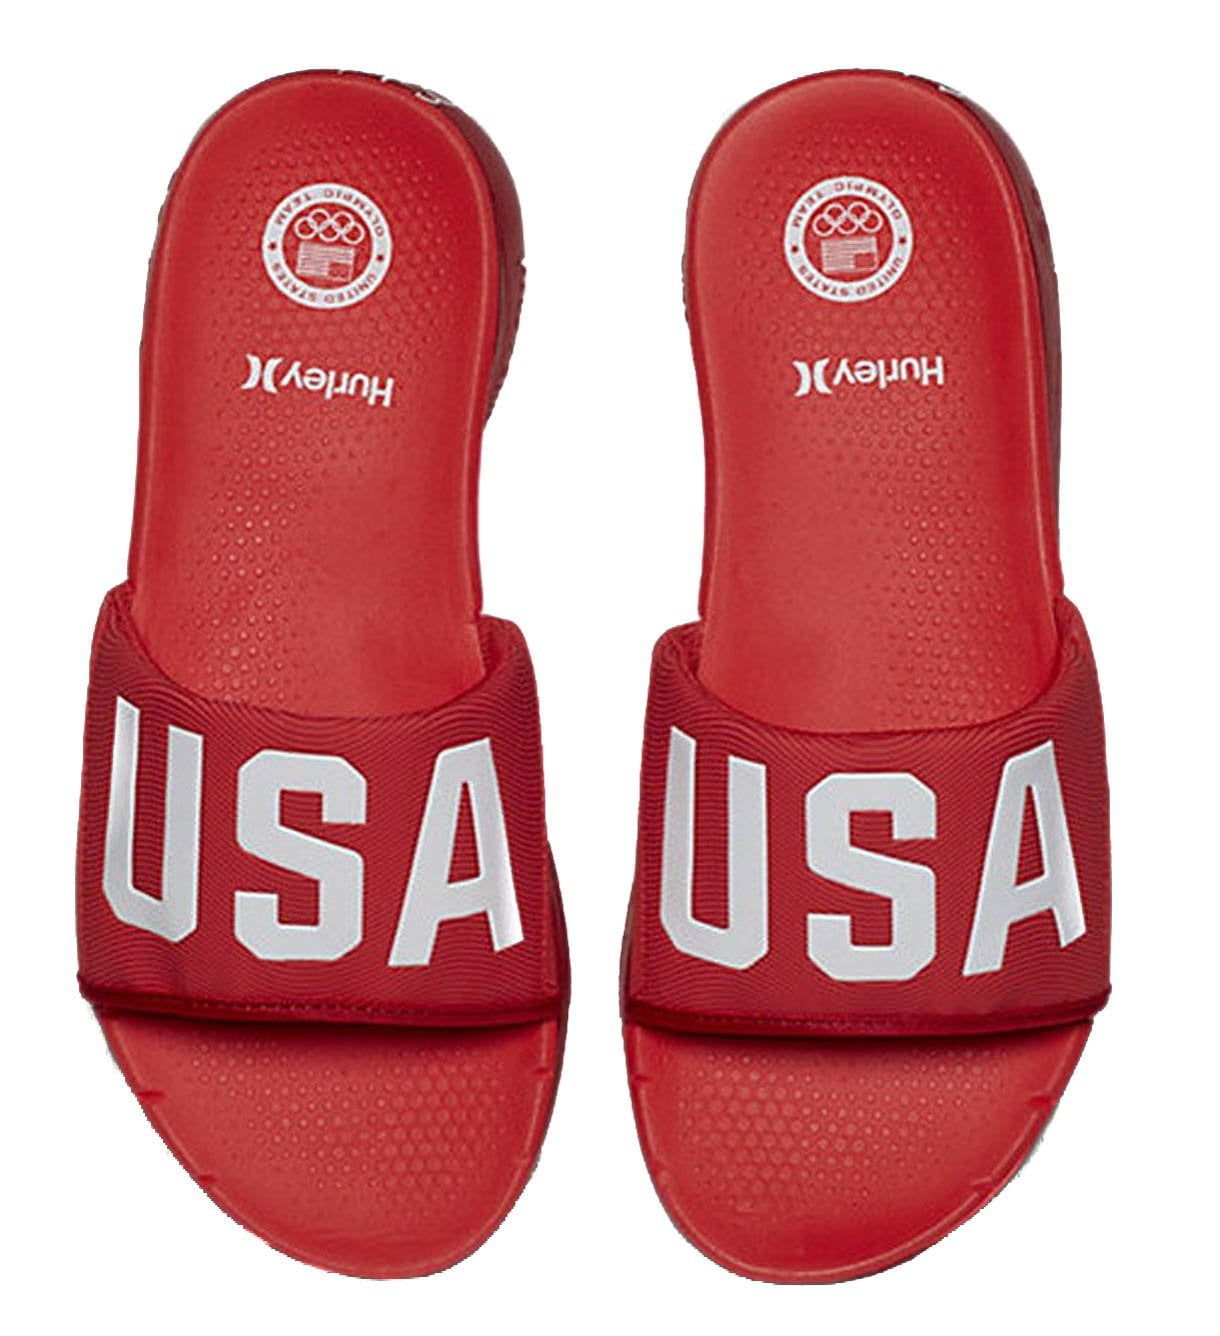 Hurley MSA0000290 Men's Phantom Free (USA) Slide Sandal, Gym Red